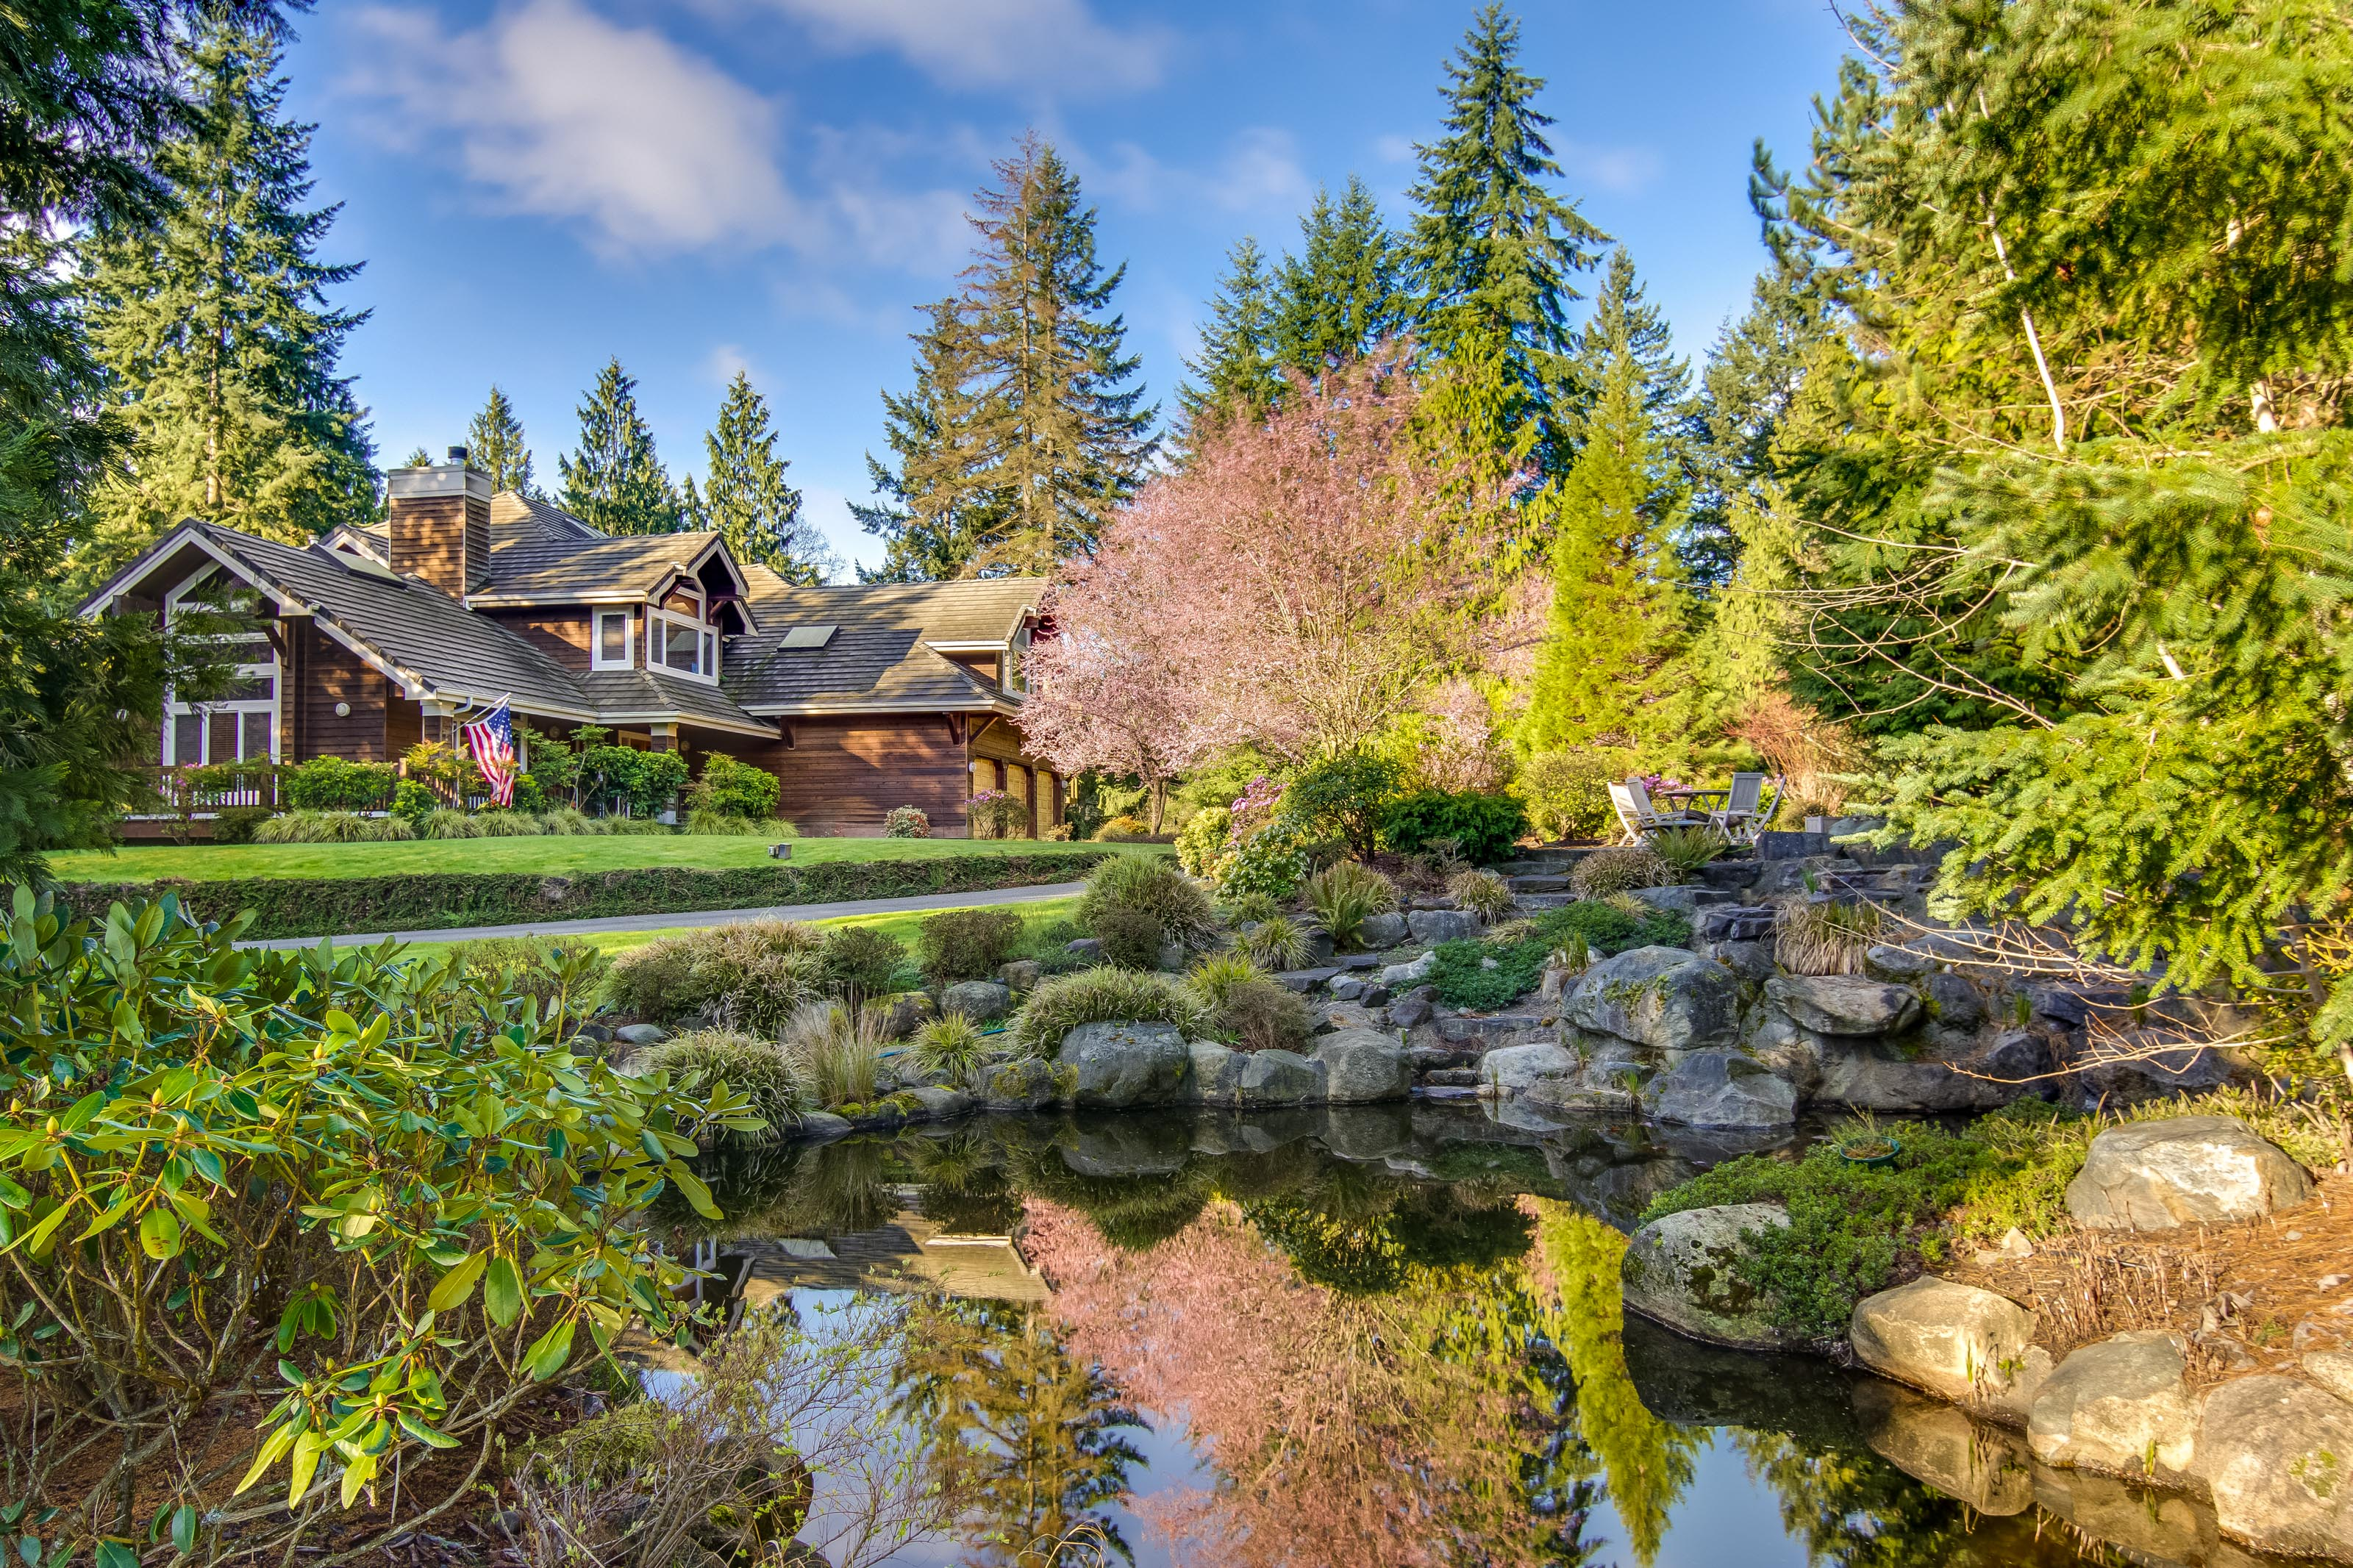 Single Family Home for Sale at Stunning Northwest Lodge 10199 Affirmed Lane NE Bainbridge Island, Washington 98110 United States